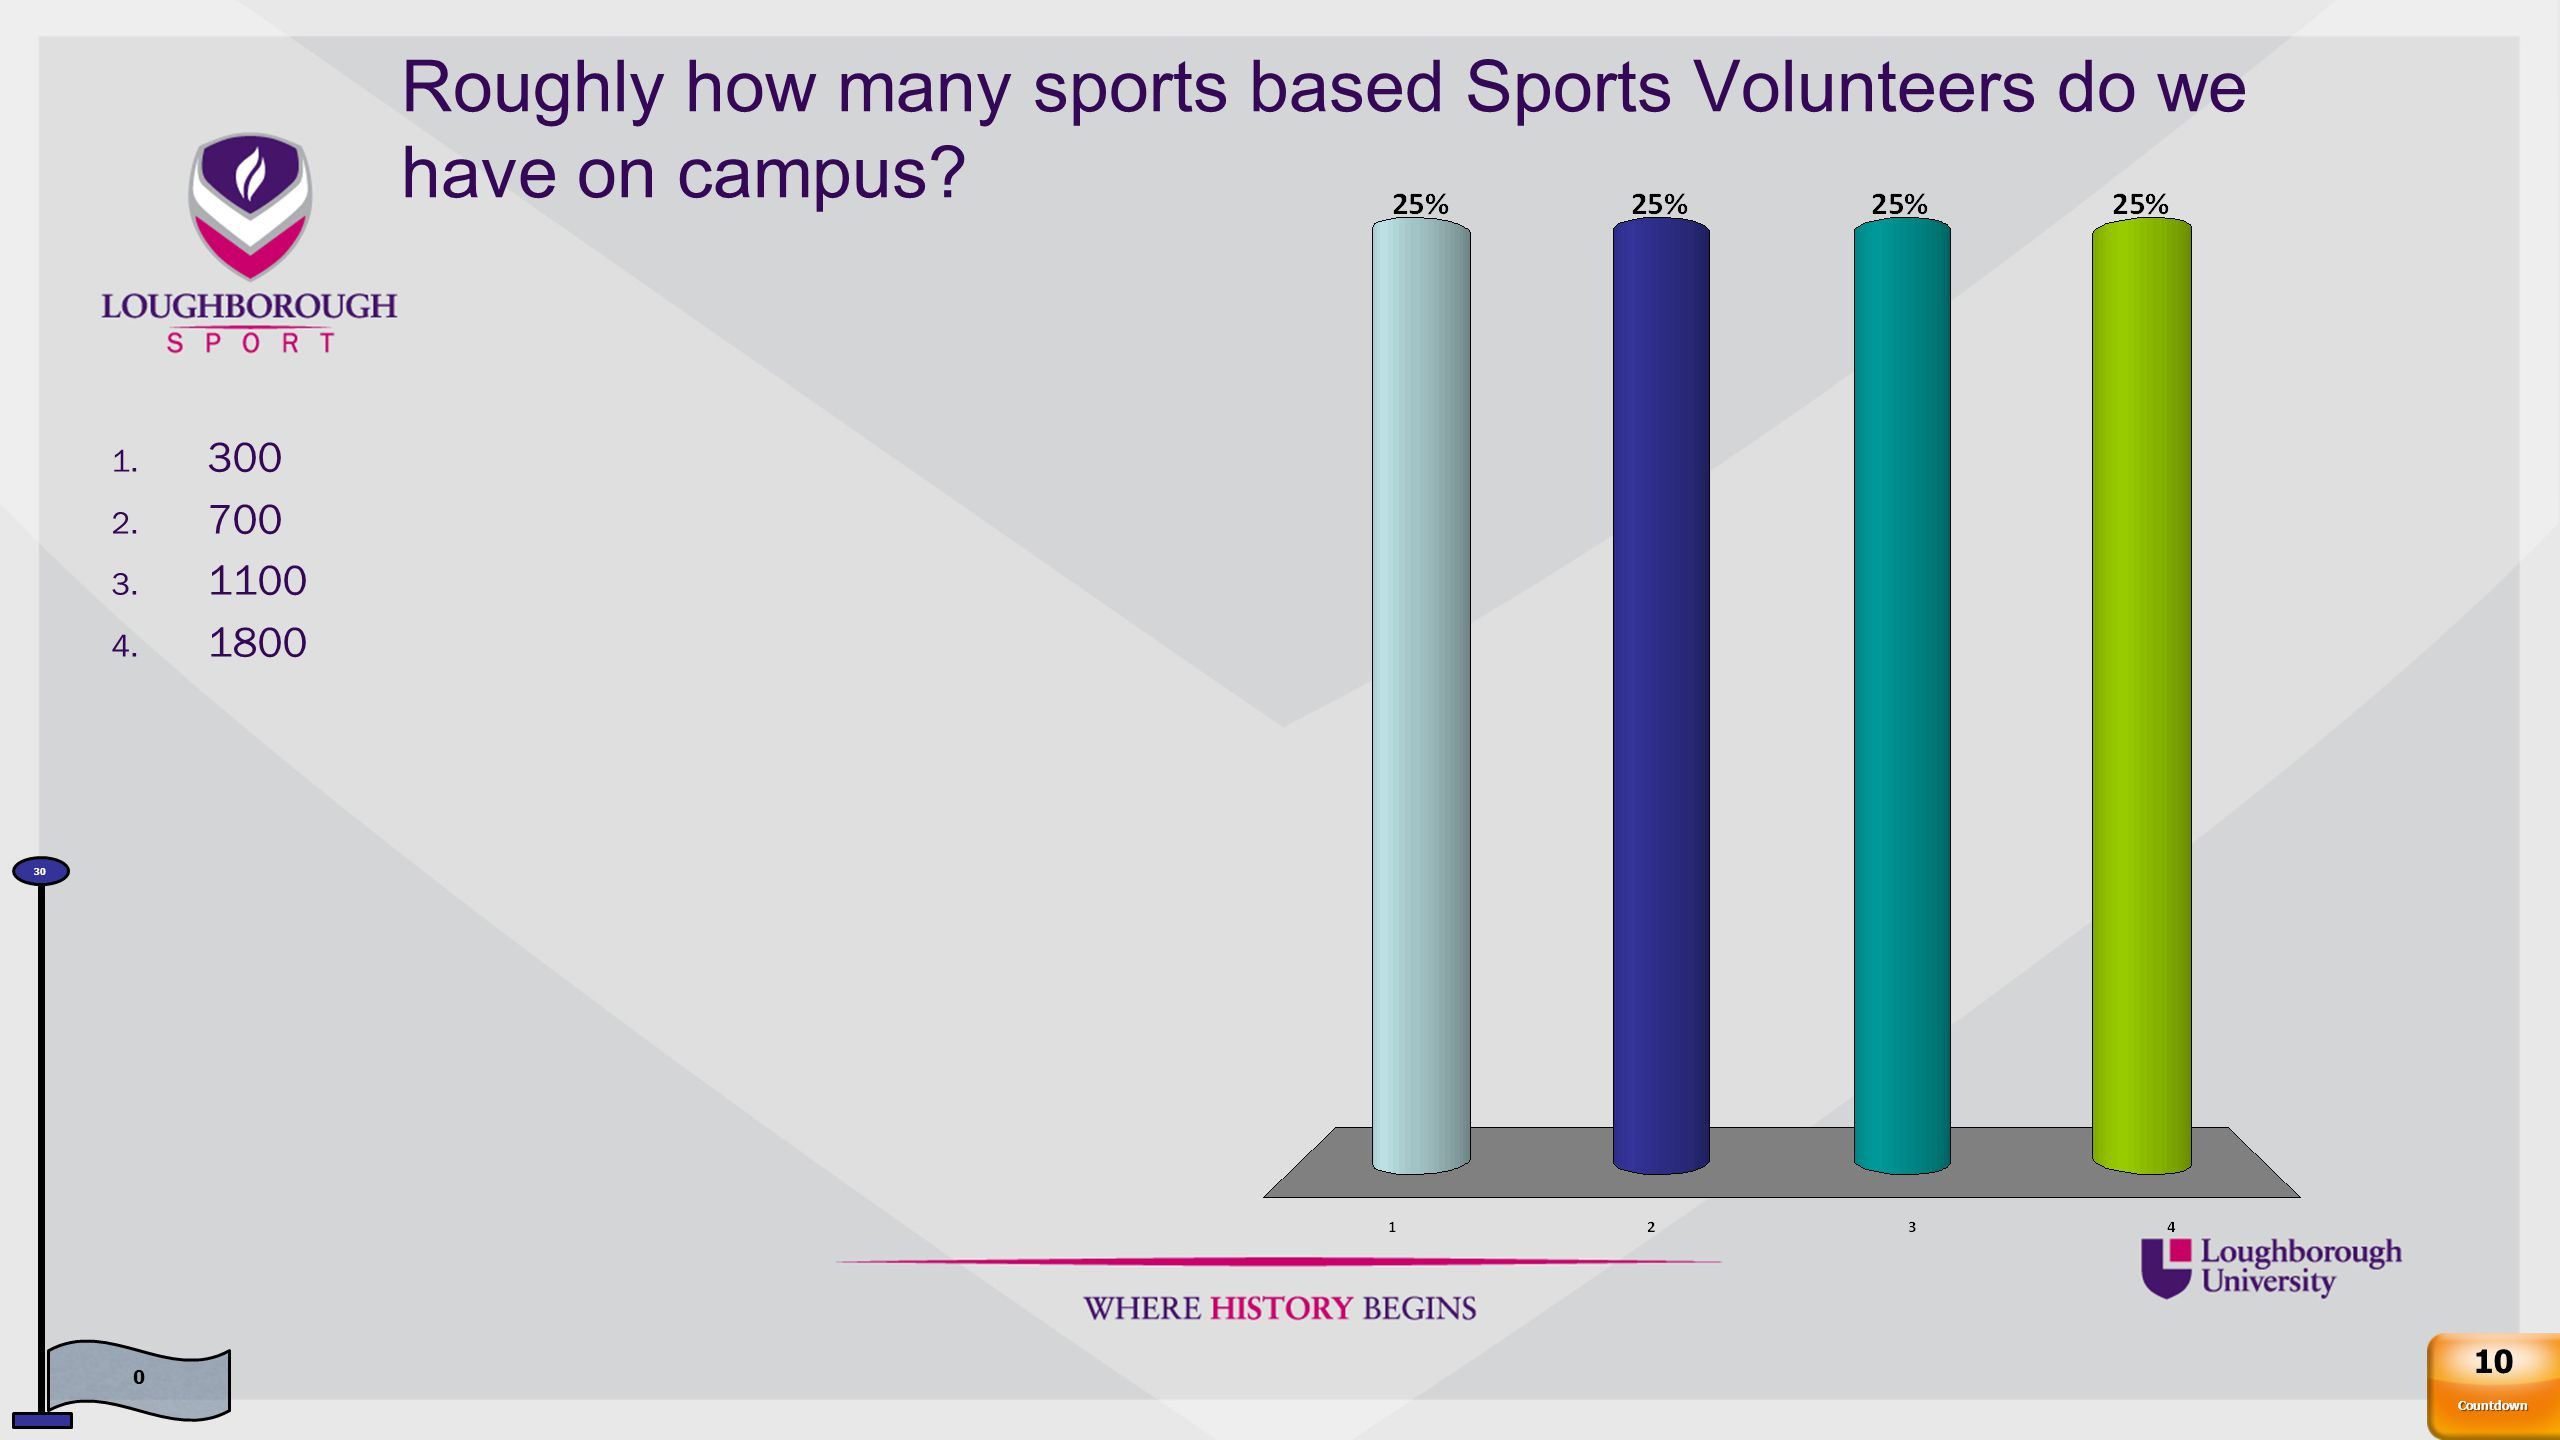 Sports Volunteers in the UK make up what percentage of all volunteering activities.